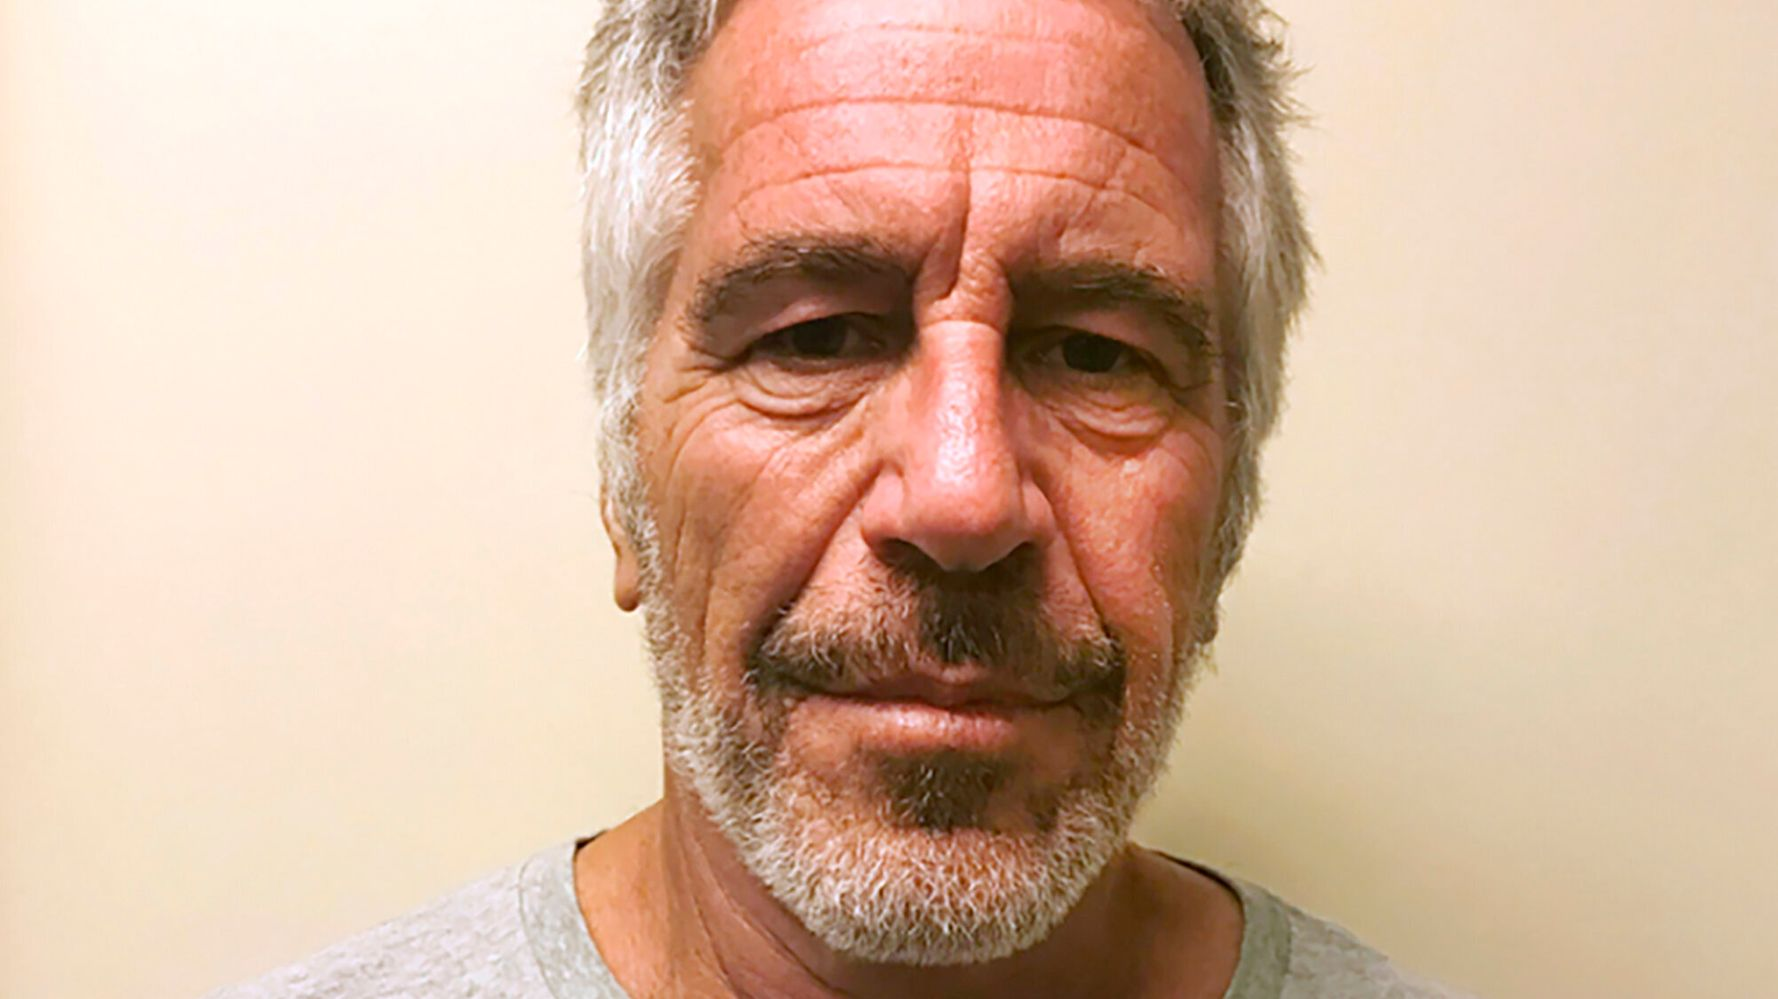 Westlake Legal Group 5d503583240000ff34937eba Jail Broke Rules Night Of Jeffrey Epstein's Death: Report